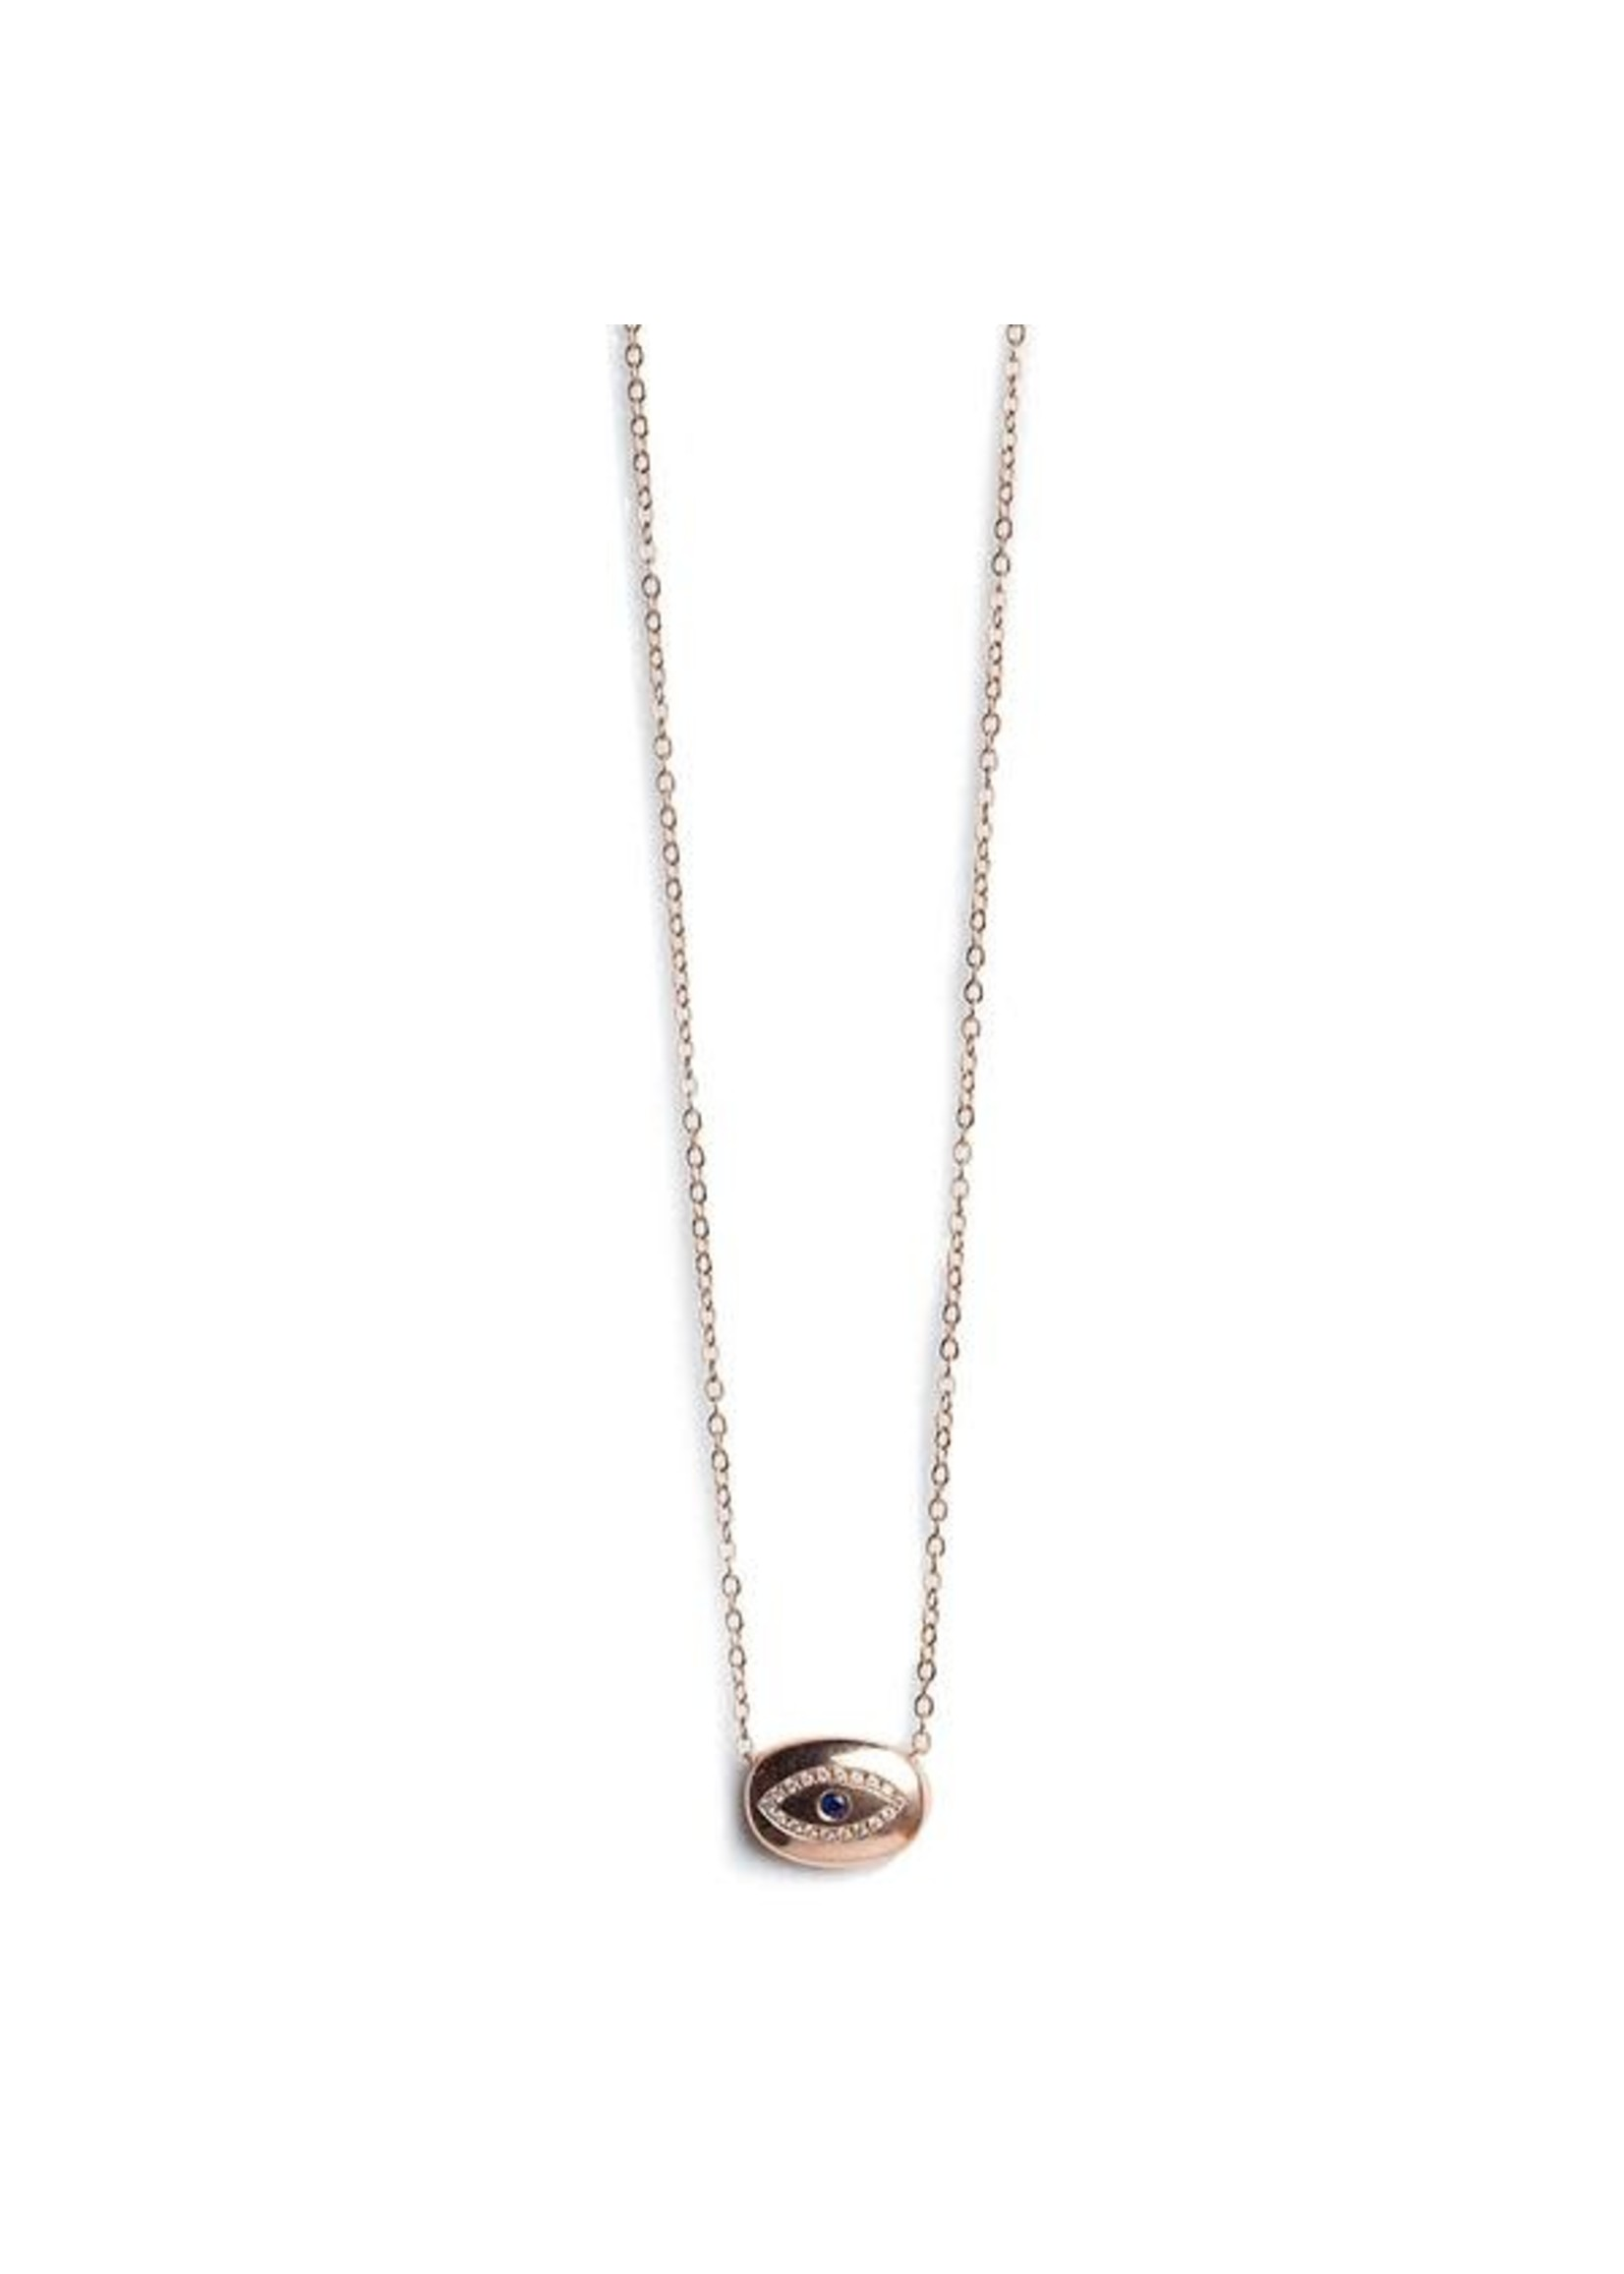 Feathered Soul Protective Tailisman Necklace